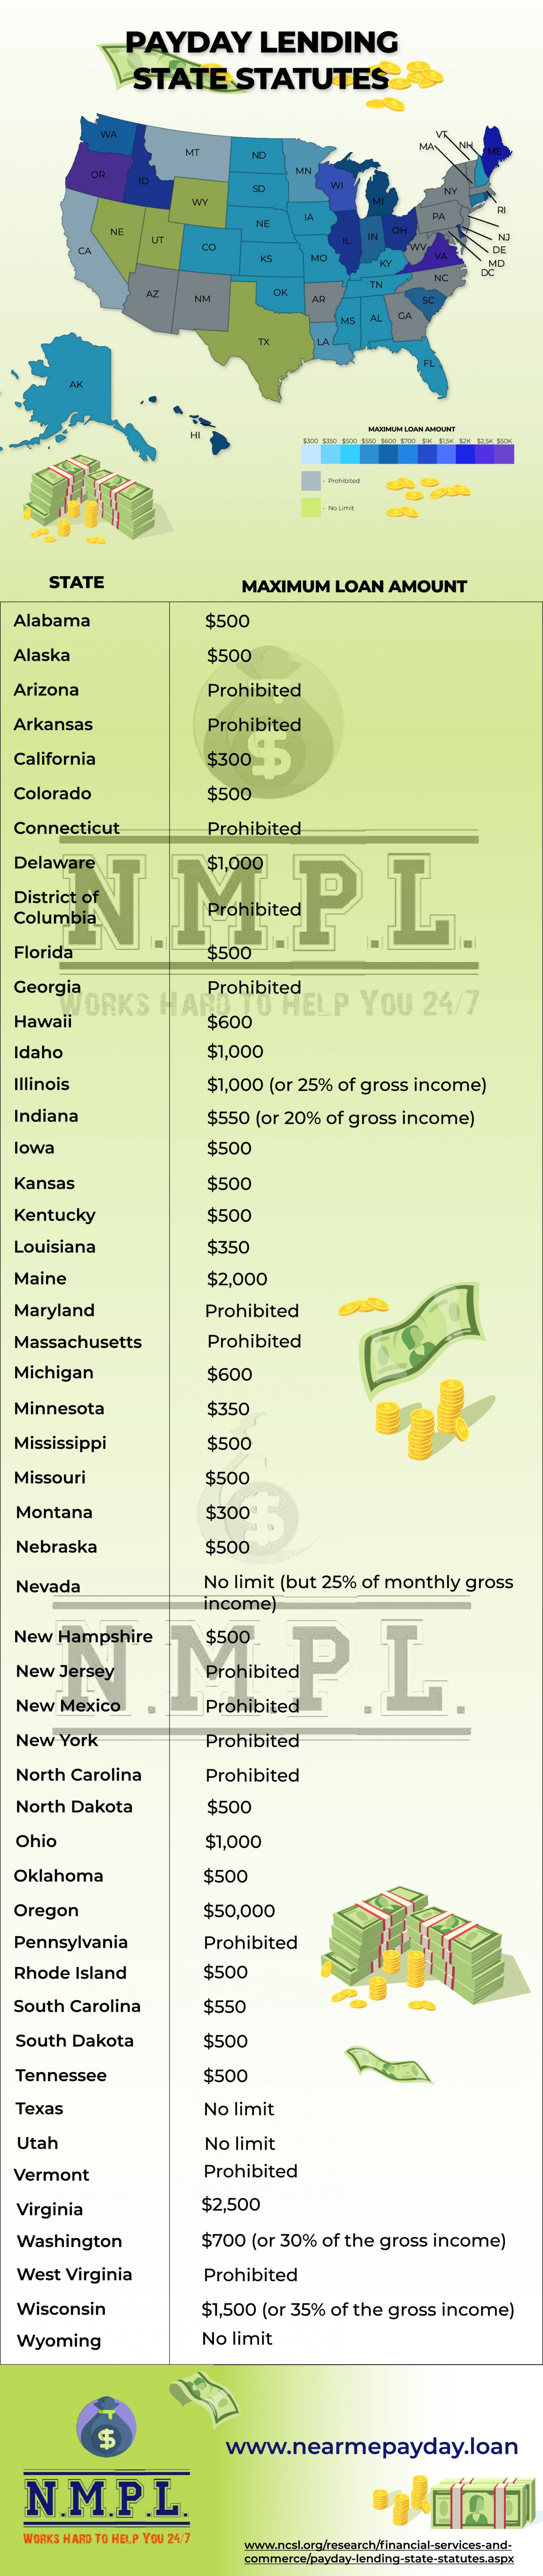 Payday Lending State Statutes in the USA Infographic